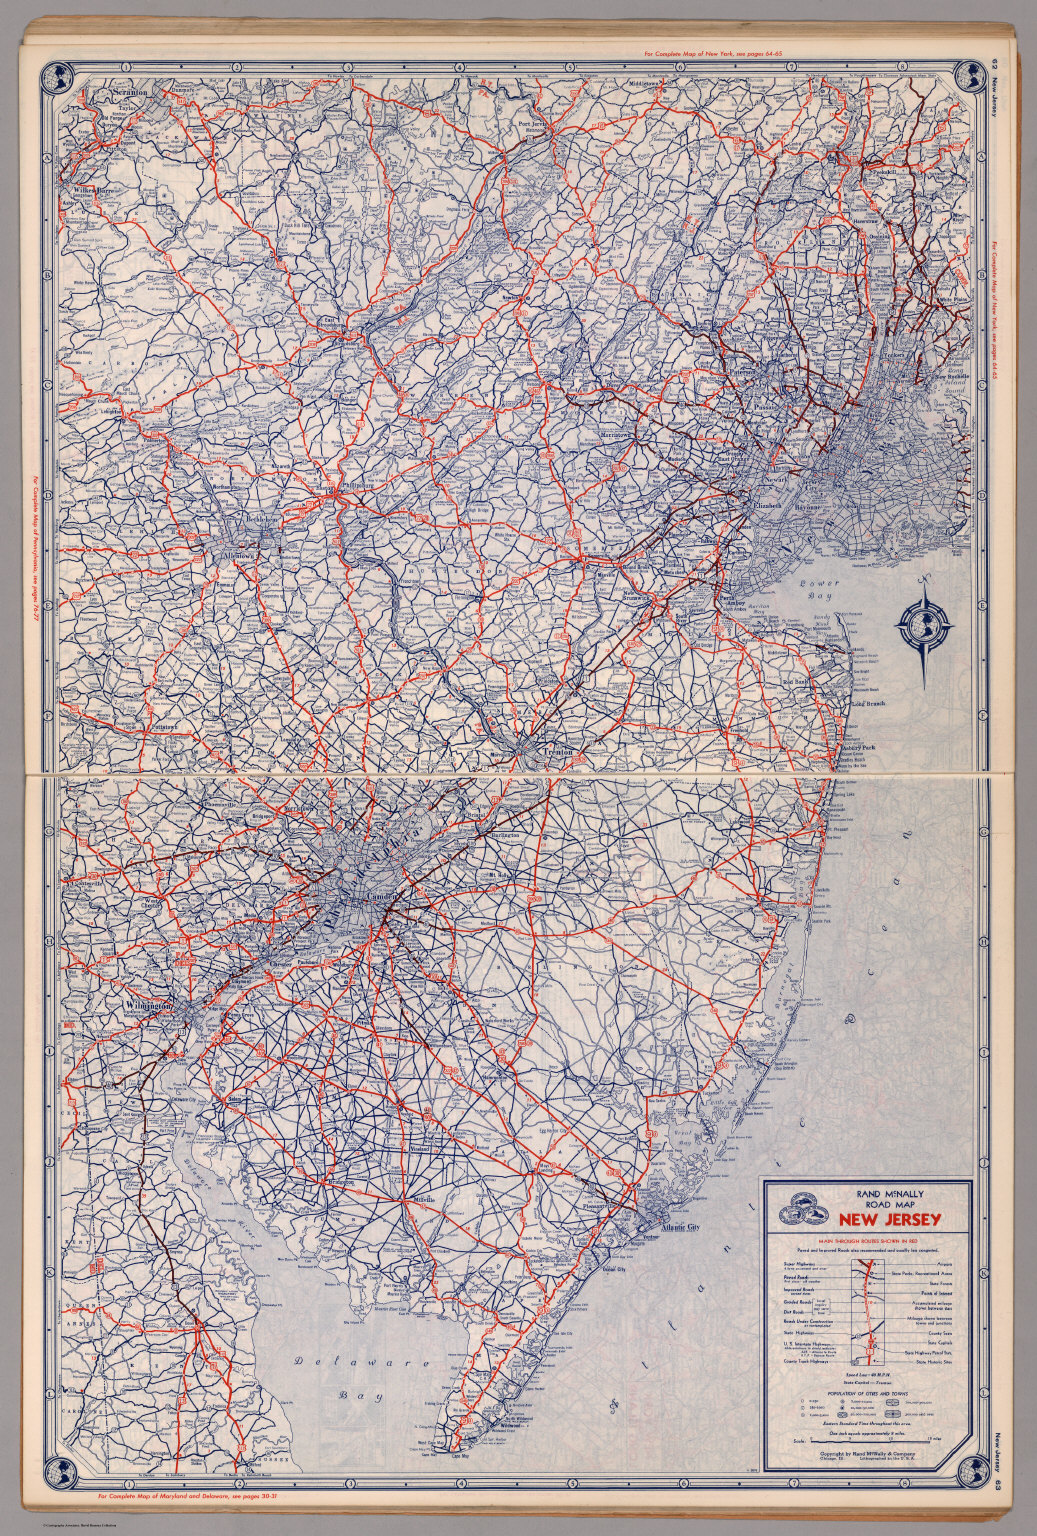 Road map of New Jersey - David Rumsey Historical Map Collection